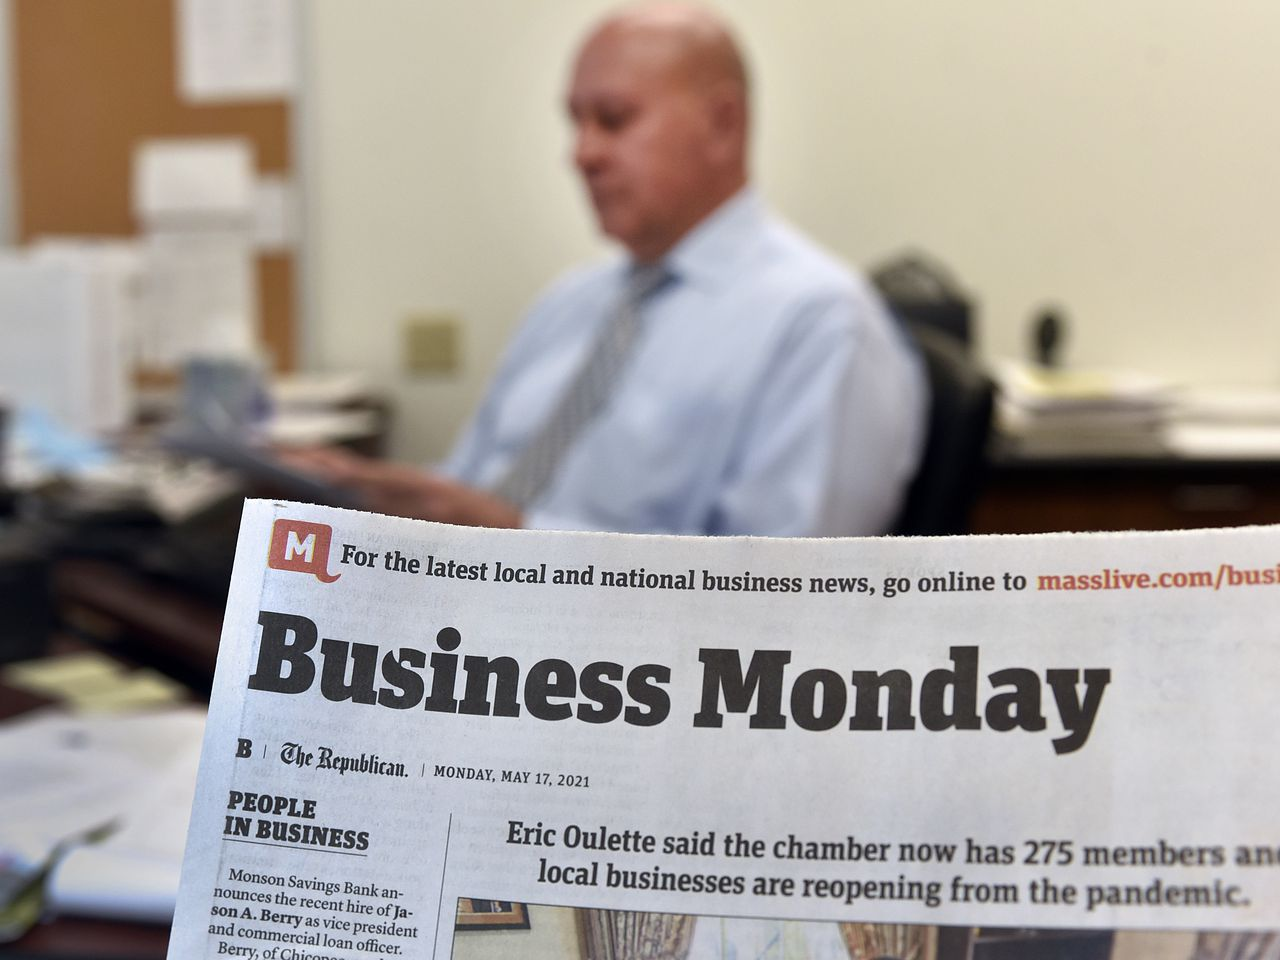 People in Business: Aug. 9, 2021 edition